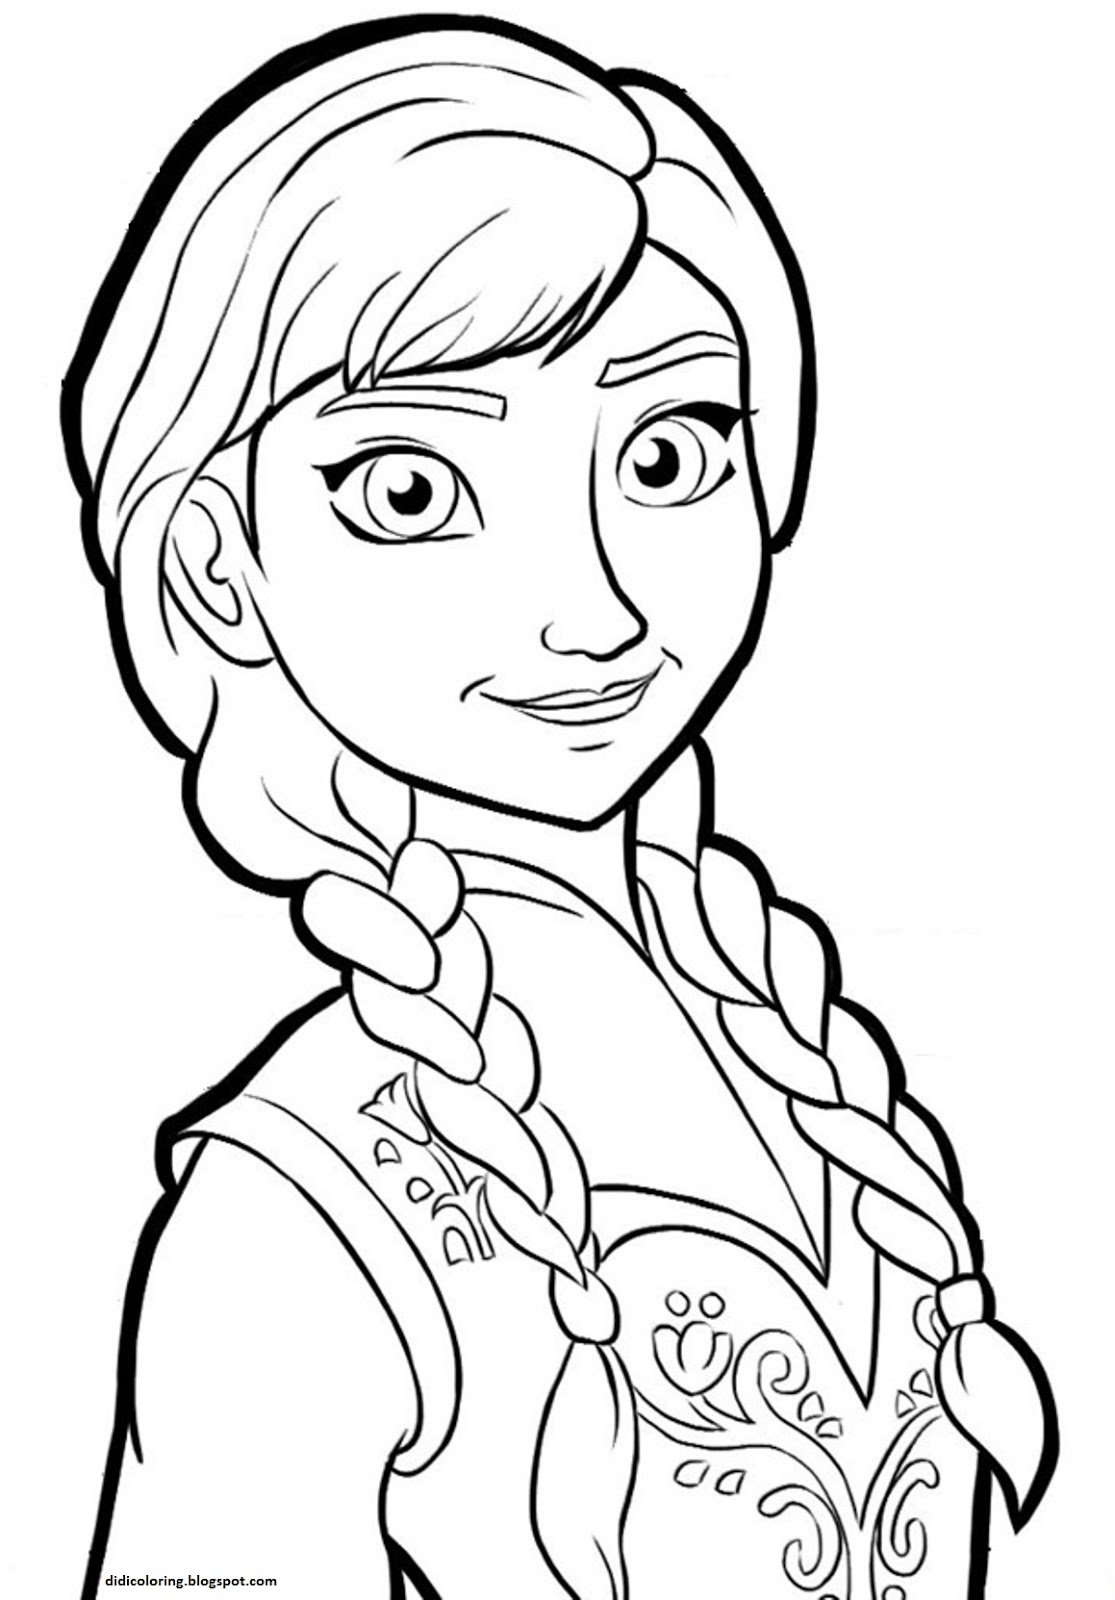 Free Printable Frozen Walt Disney Characters Coloring For Children Princess Anna Page